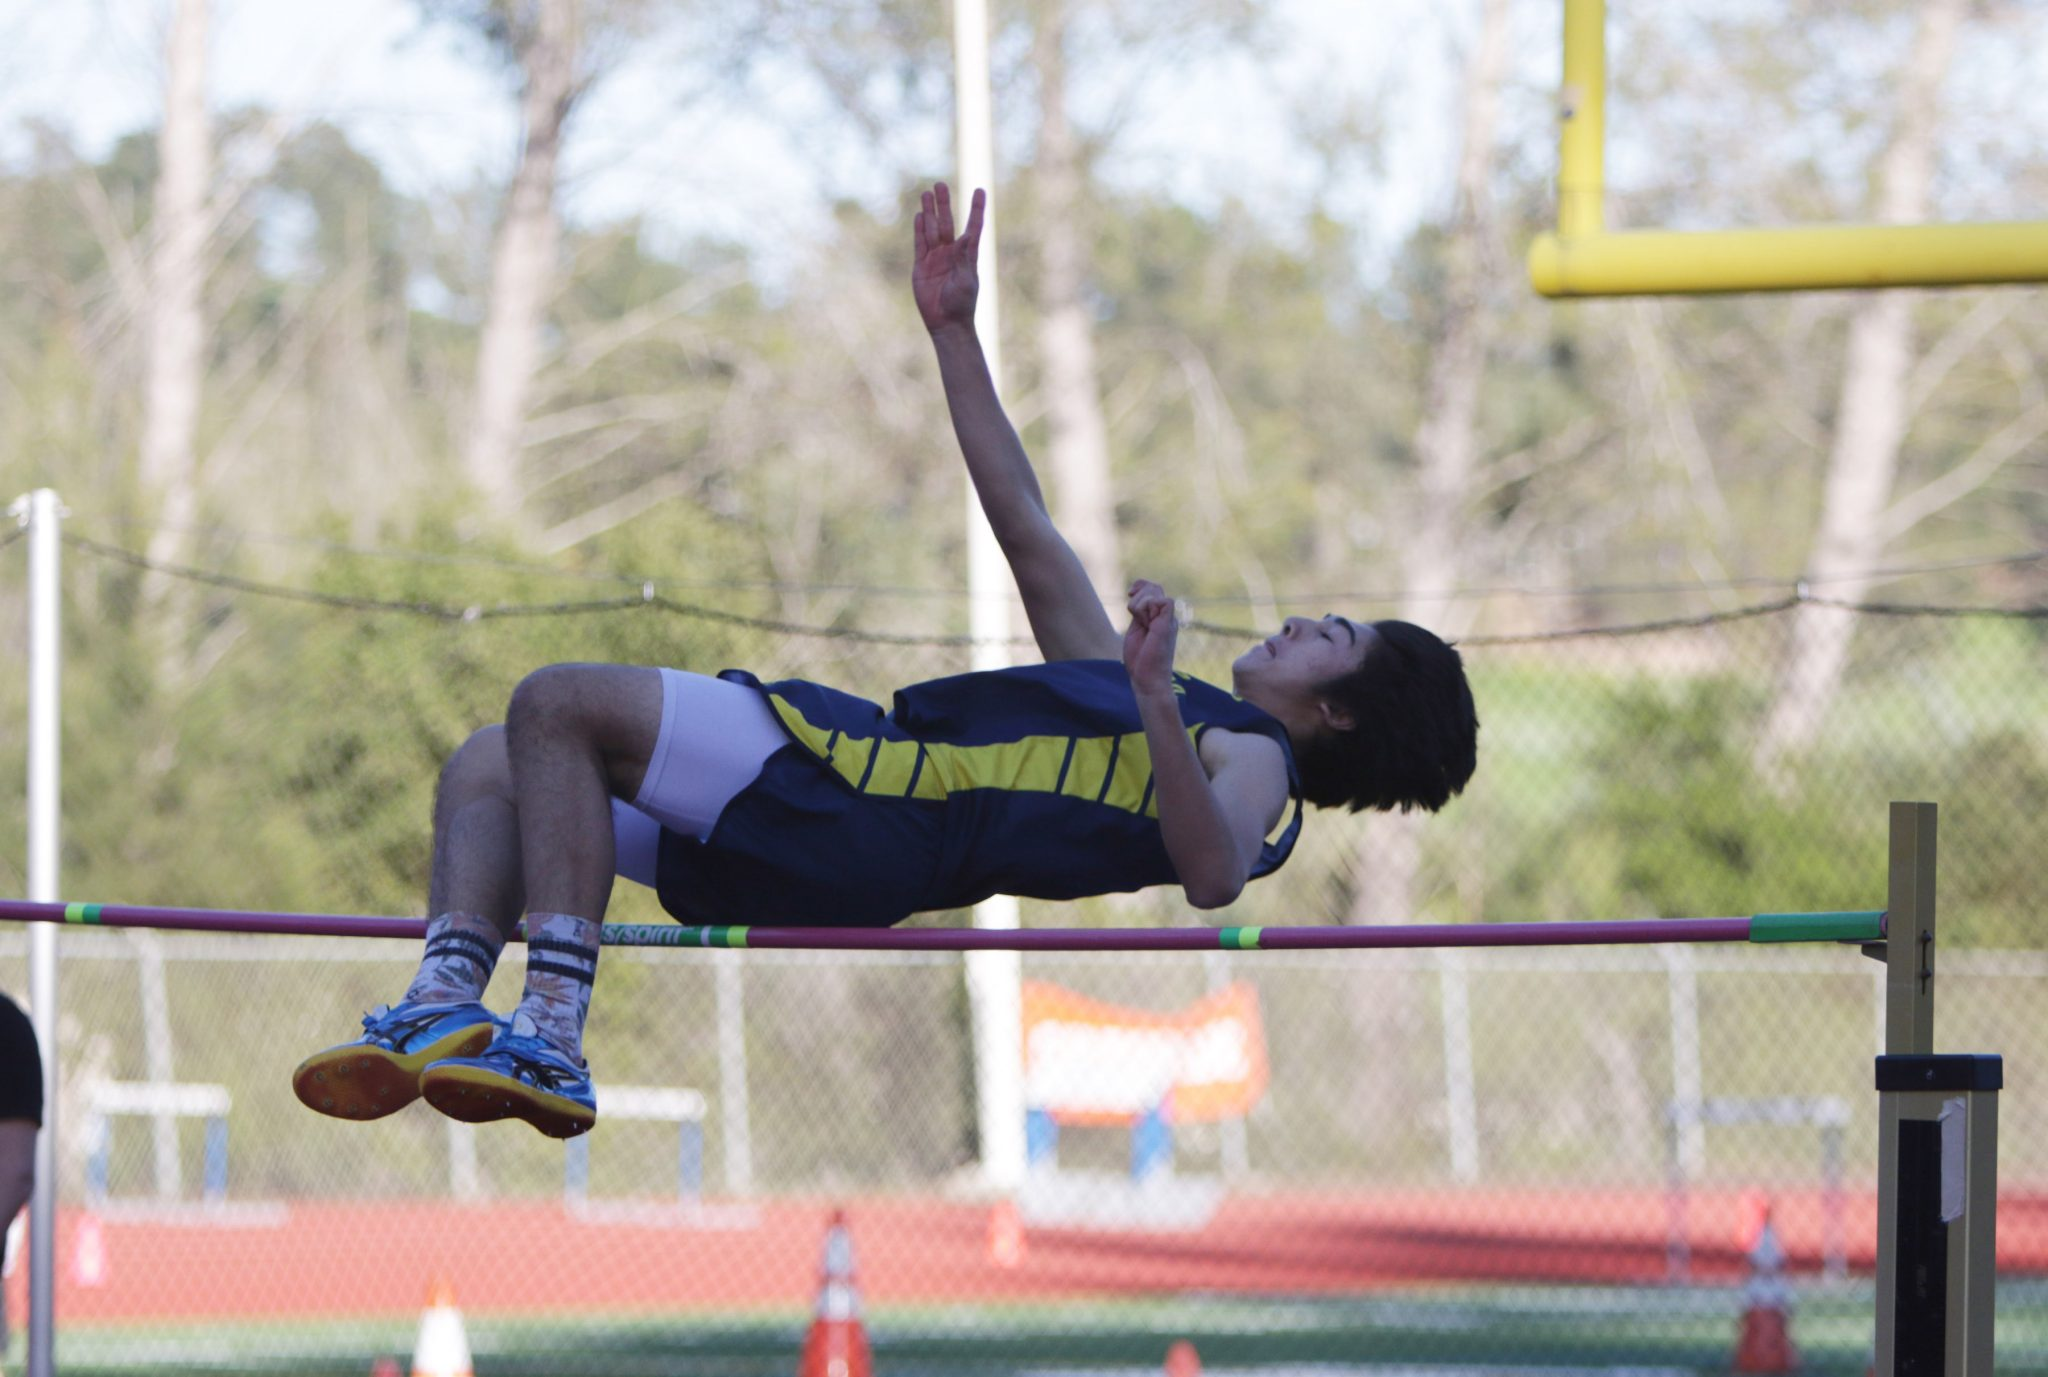 Alhambra high jumper James Cretan (pictured above in a league dual meet on March 16) took first place in the high jump by clearing 5 feet 10 inches in the Oakland Invitational at Chabot College in Hayward on Saturday, March 26, 2016. Cretan beat out teammate Jackson Norried, who also cleared 5 feet 10 inches, but Cretan cleared the jump with less misses. (GERARDO RECINOS / Martinez Tribune)